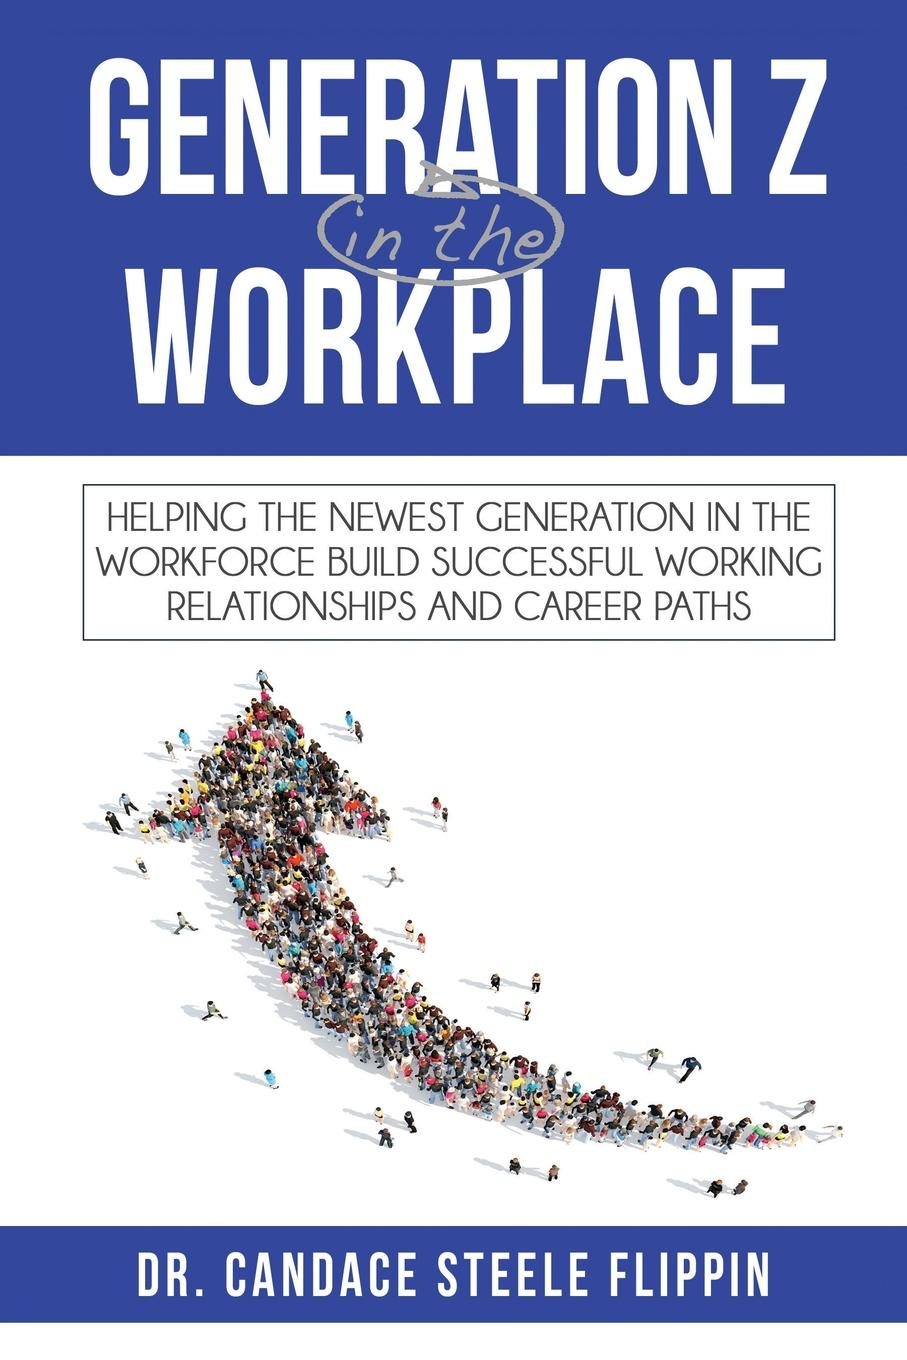 Generation Z in the Workplace. Helping the Newest Generation in the Workforce Build Successful Working Relationships and Career Paths What will it take to help Generation Z Succeed at Work and in their...